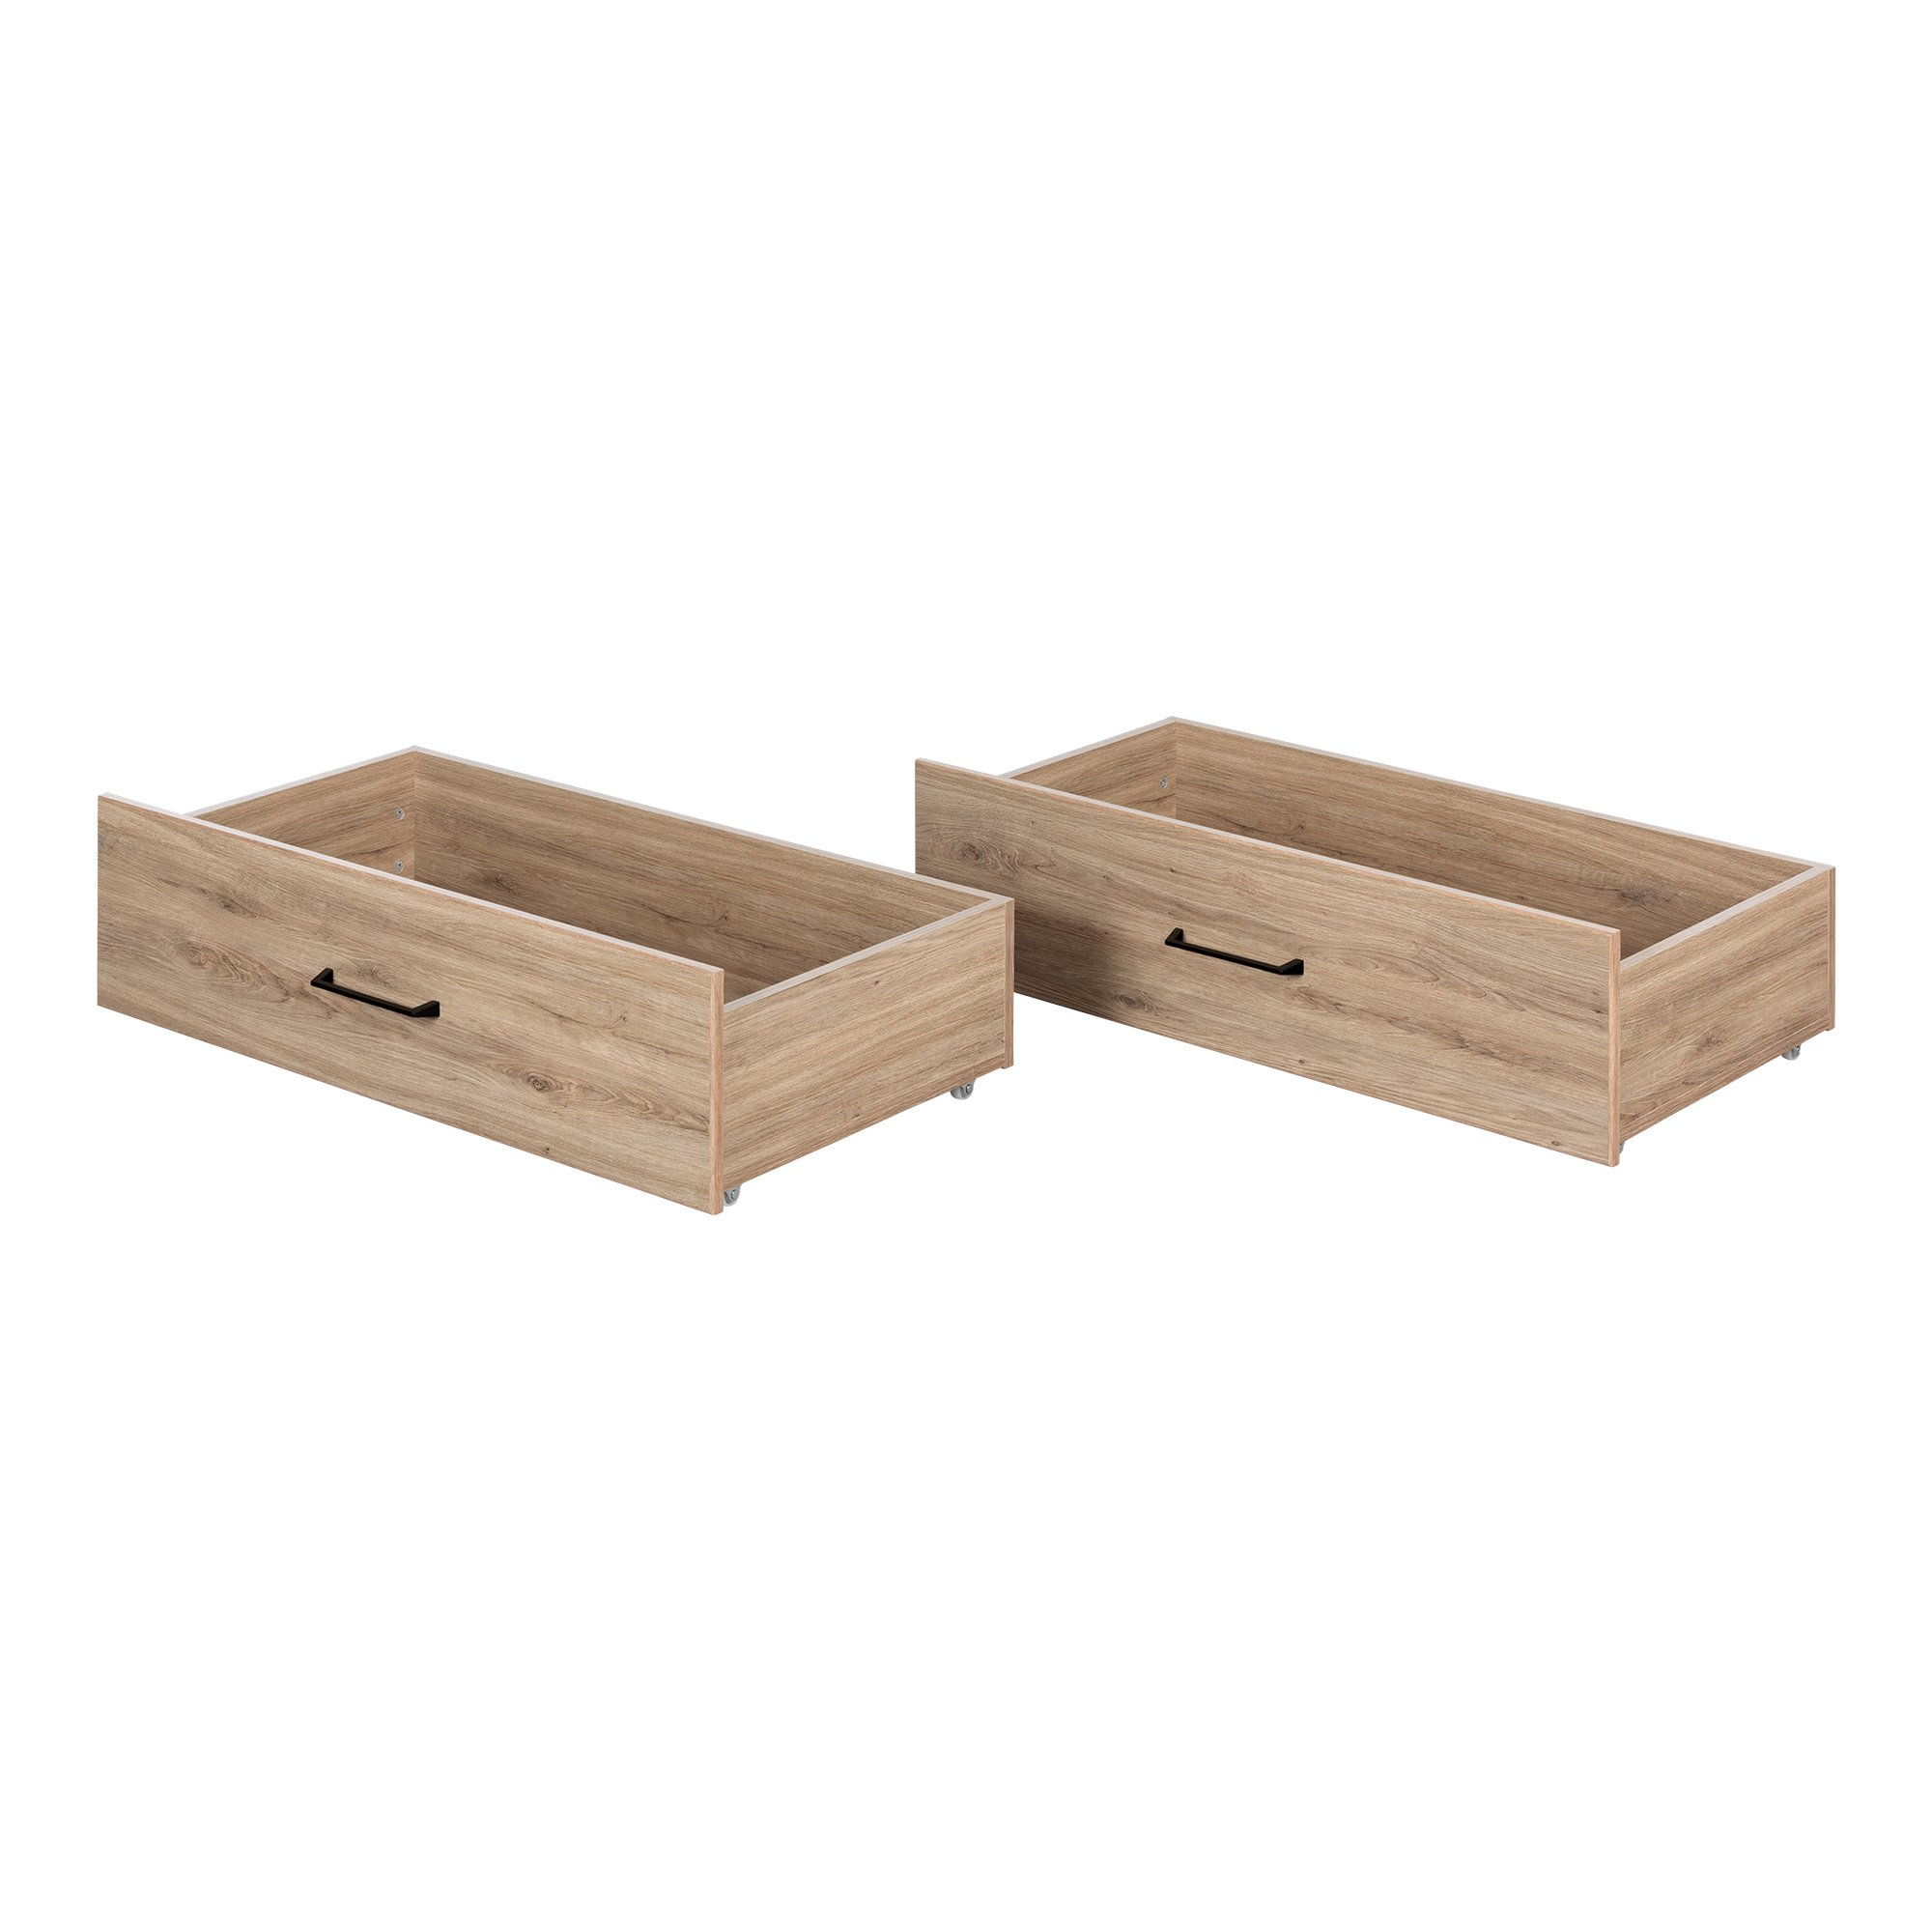 South Shore 11028 Fakto Set of 2 Drawers on Wheels, Rustic Oak by South Shore